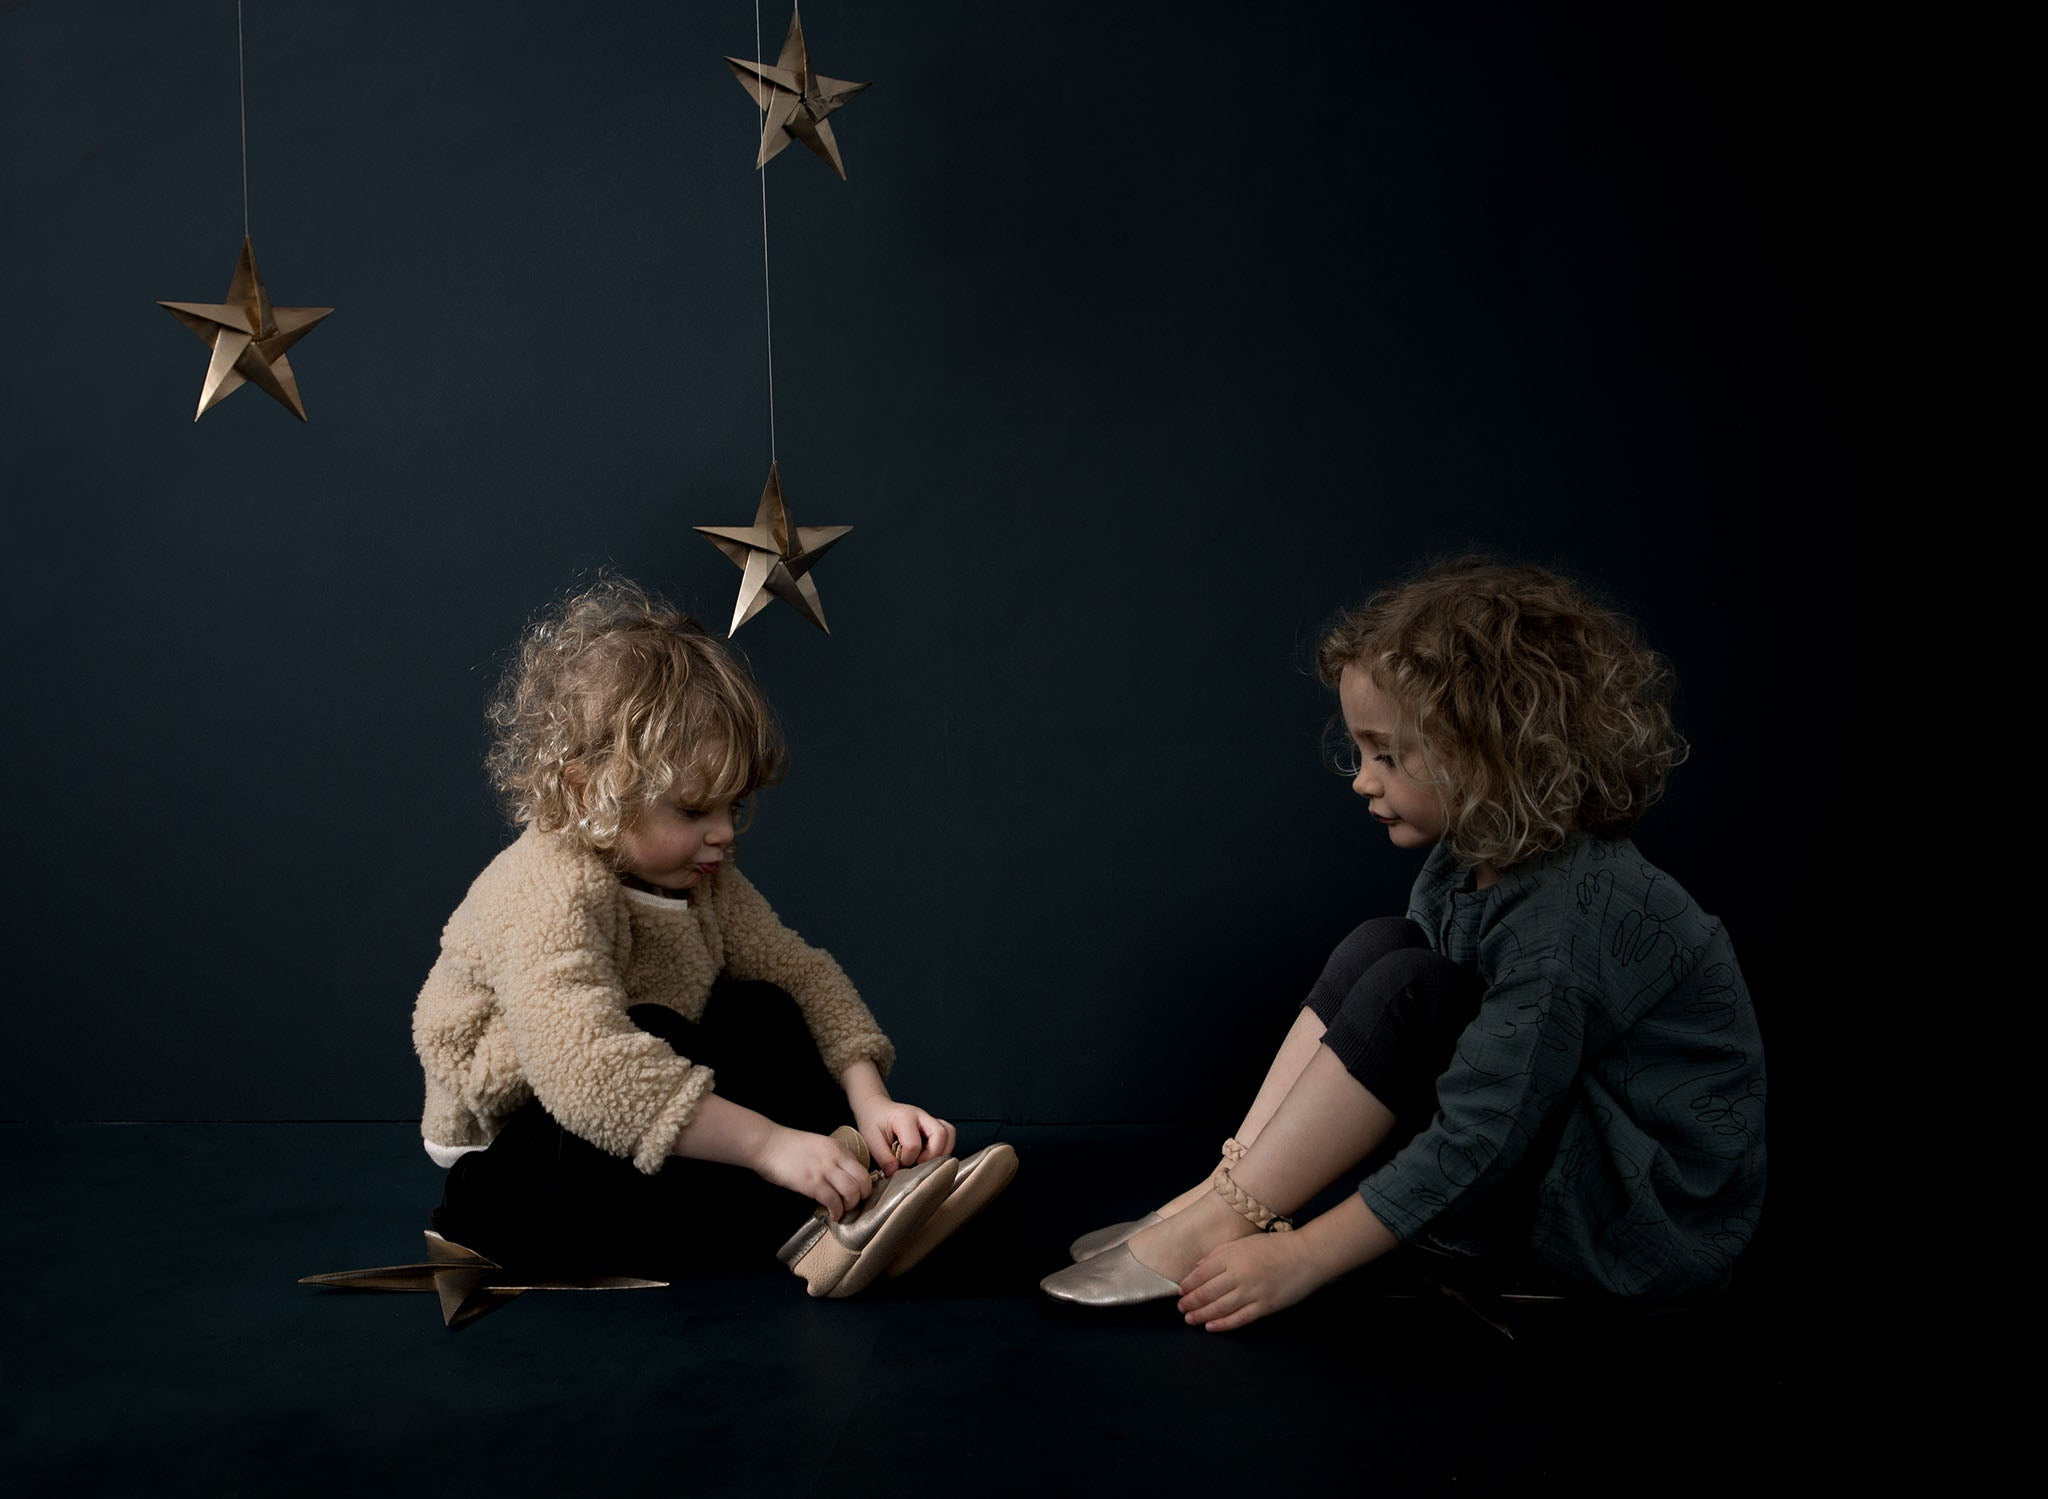 Natural Leather handmade soft structured childrens footwear. Exclusives by Amy & Ivor for Cissywears at Liberty London.